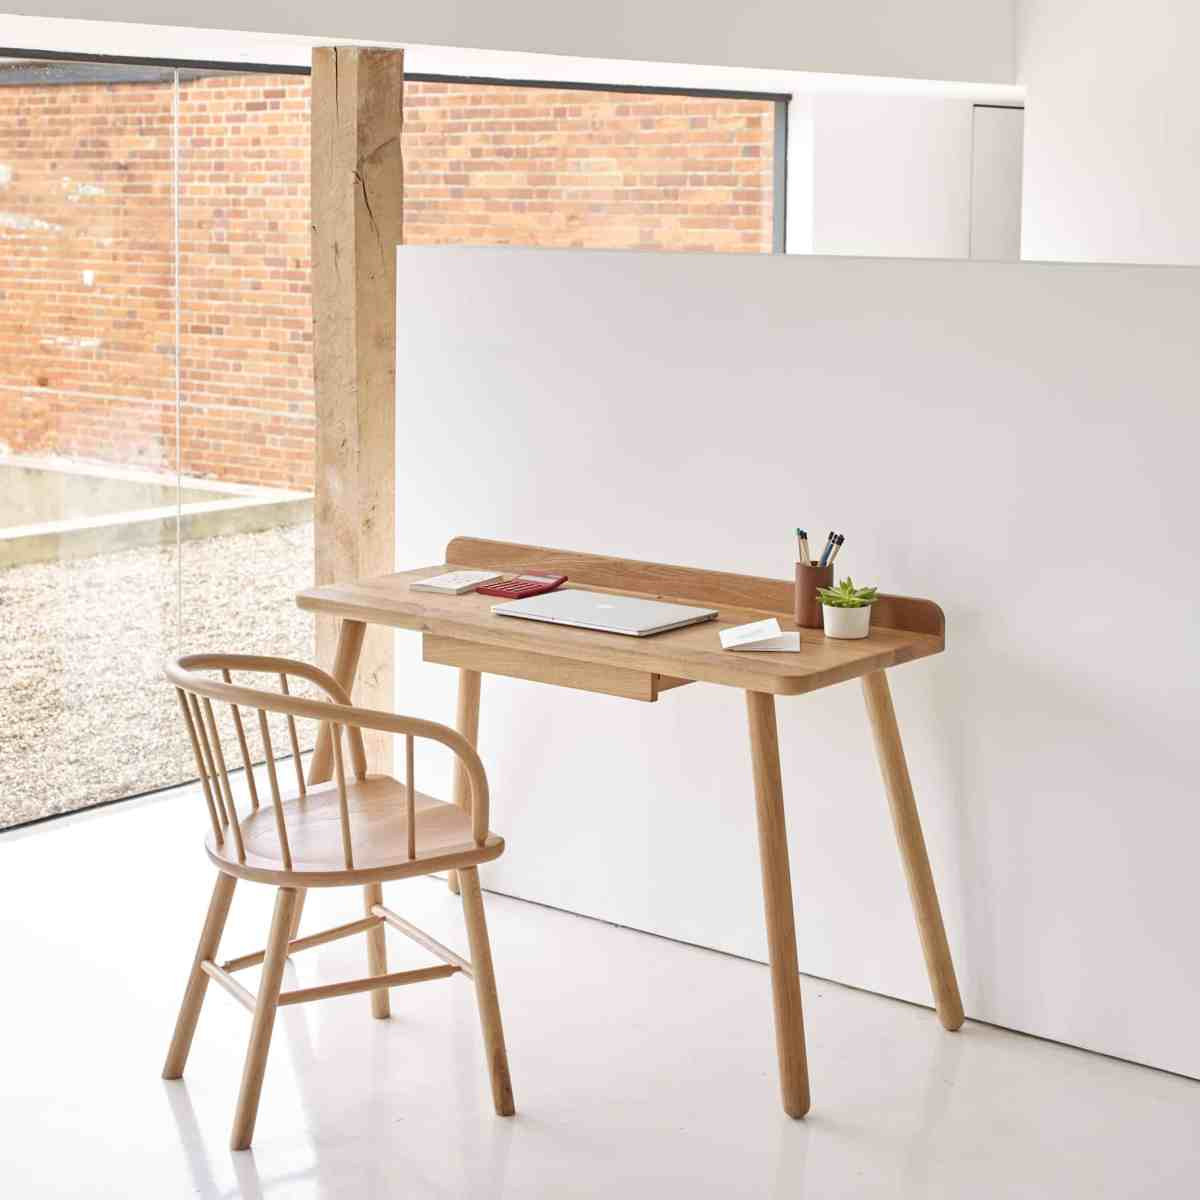 contemporary-craft-products-desk-one-Another-Country-003